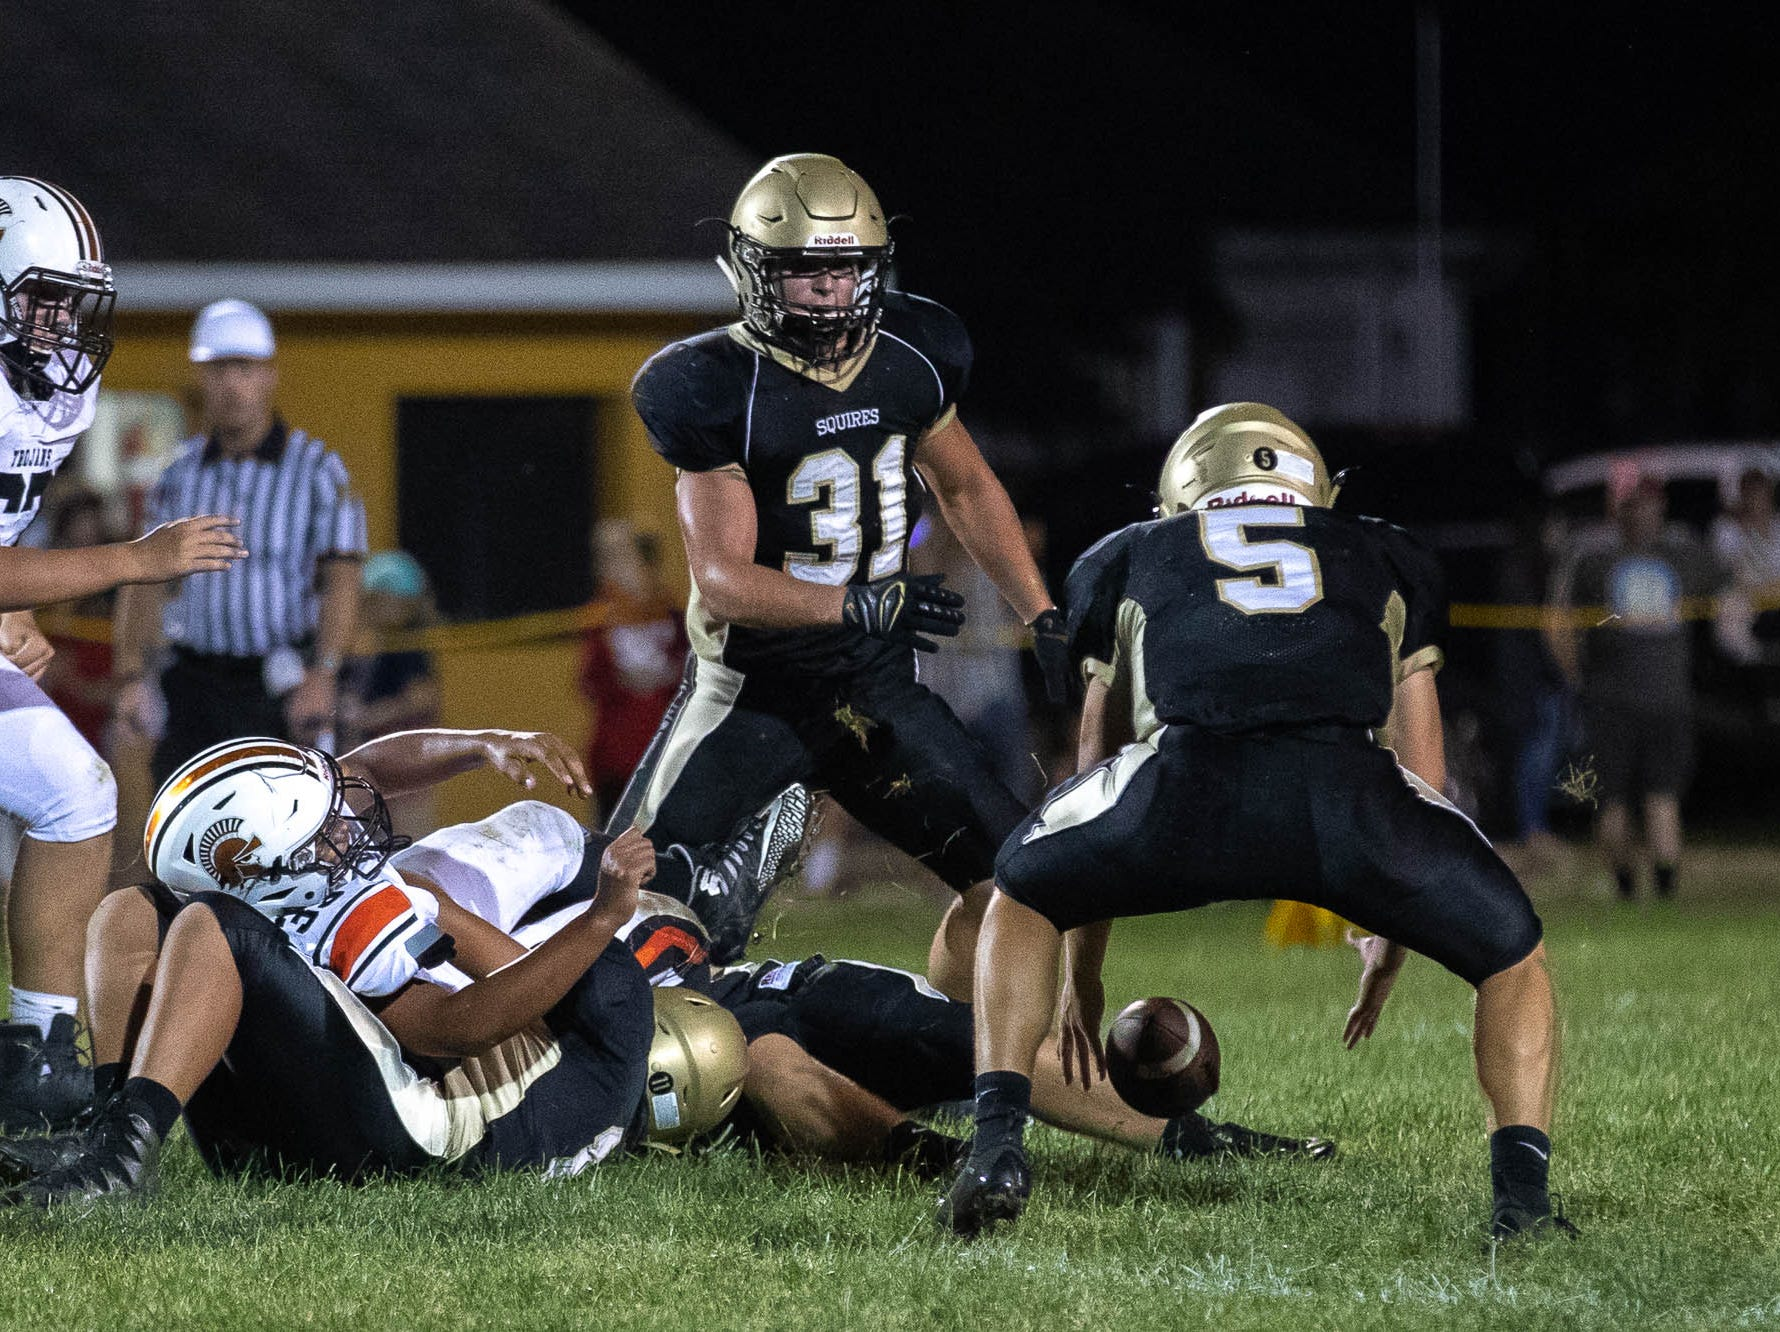 Delone's Kevin Mowrey (5) retrieves a fumble before scoring a 53-yard touchdown during the second half of a football game between Delone Catholic and York Suburban, Friday, Aug. 31, 2018, at Delone Catholic High School in McSherrystown. Delone beat York Suburban 62-0.